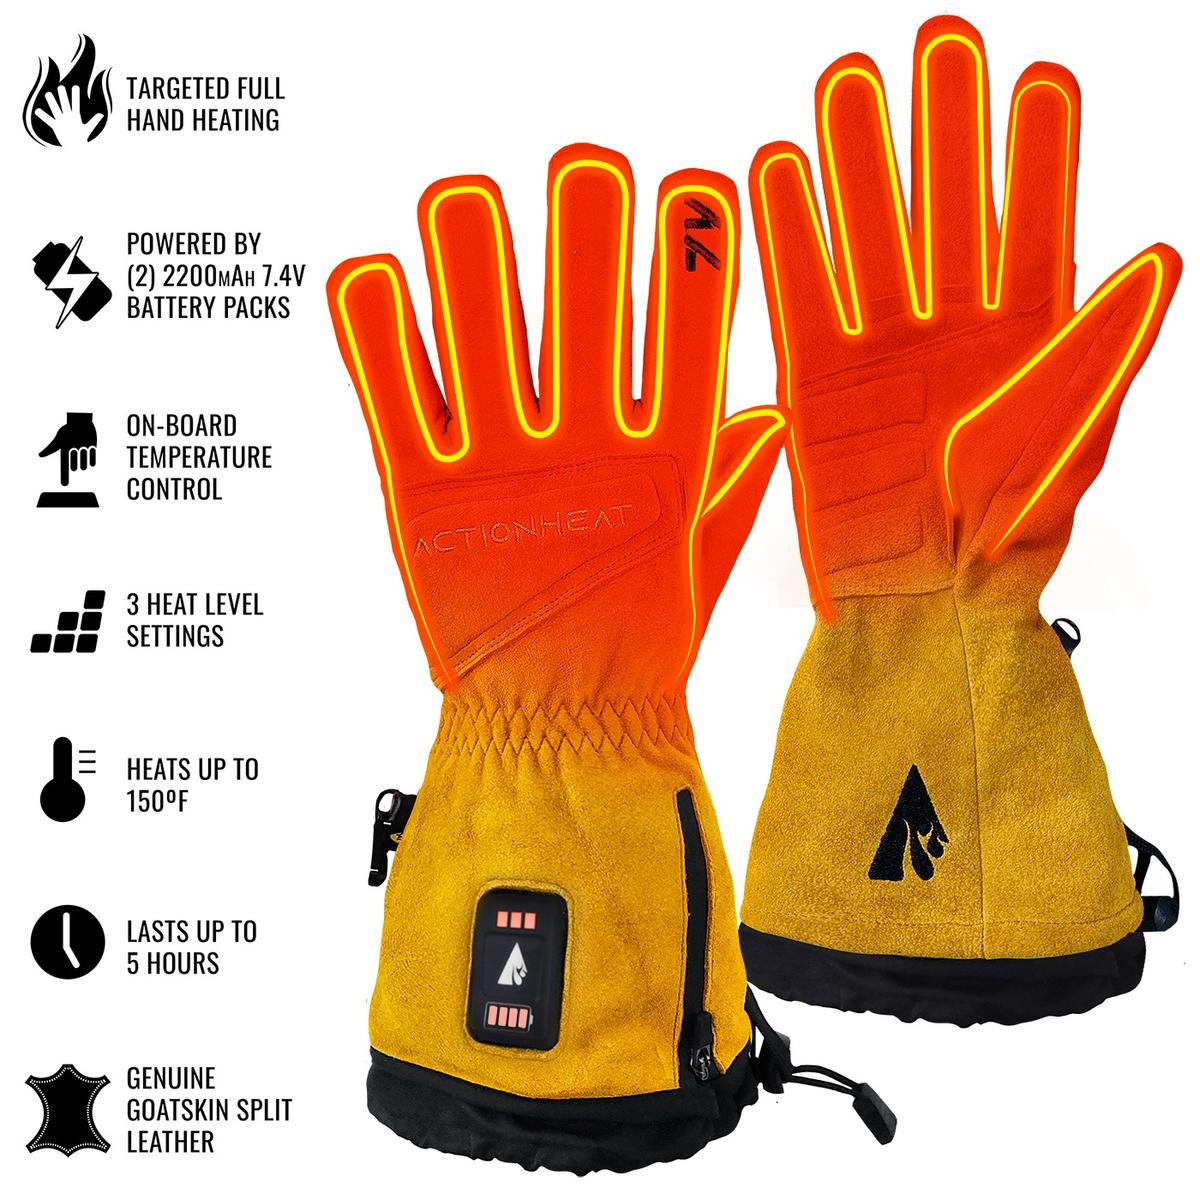 ActionHeat 7V Rugged Leather Heated Work Gloves - Back